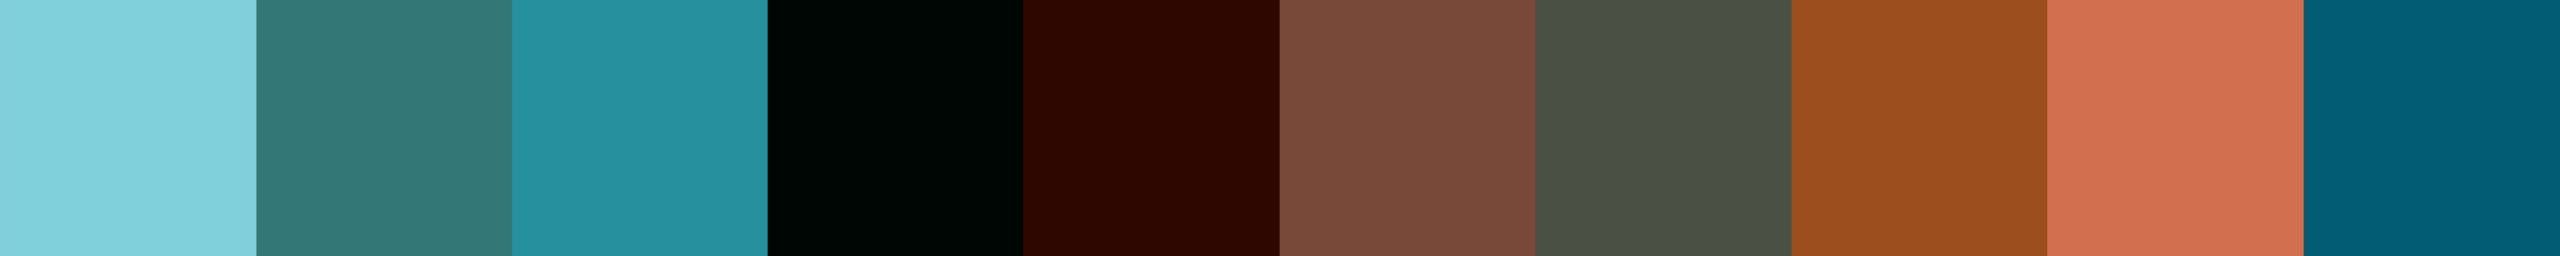 388 Kathismia Color Palette